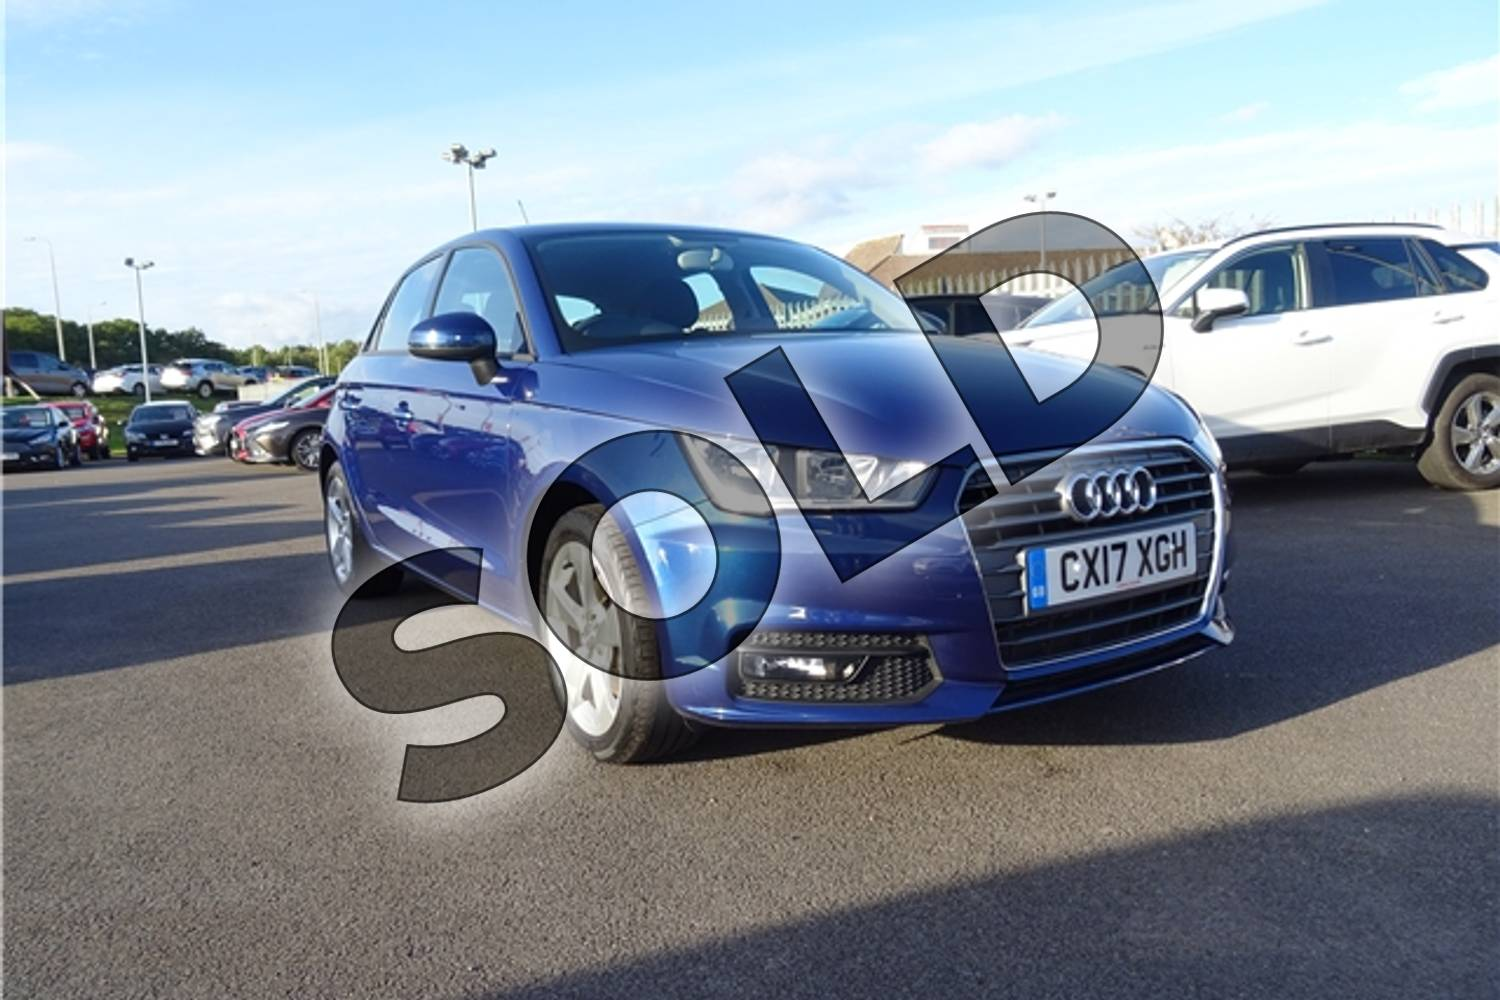 2017 Audi A1 Sportback 1.4 TFSI Sport 5dr in Metallic - Utopia blue at Listers Toyota Lincoln